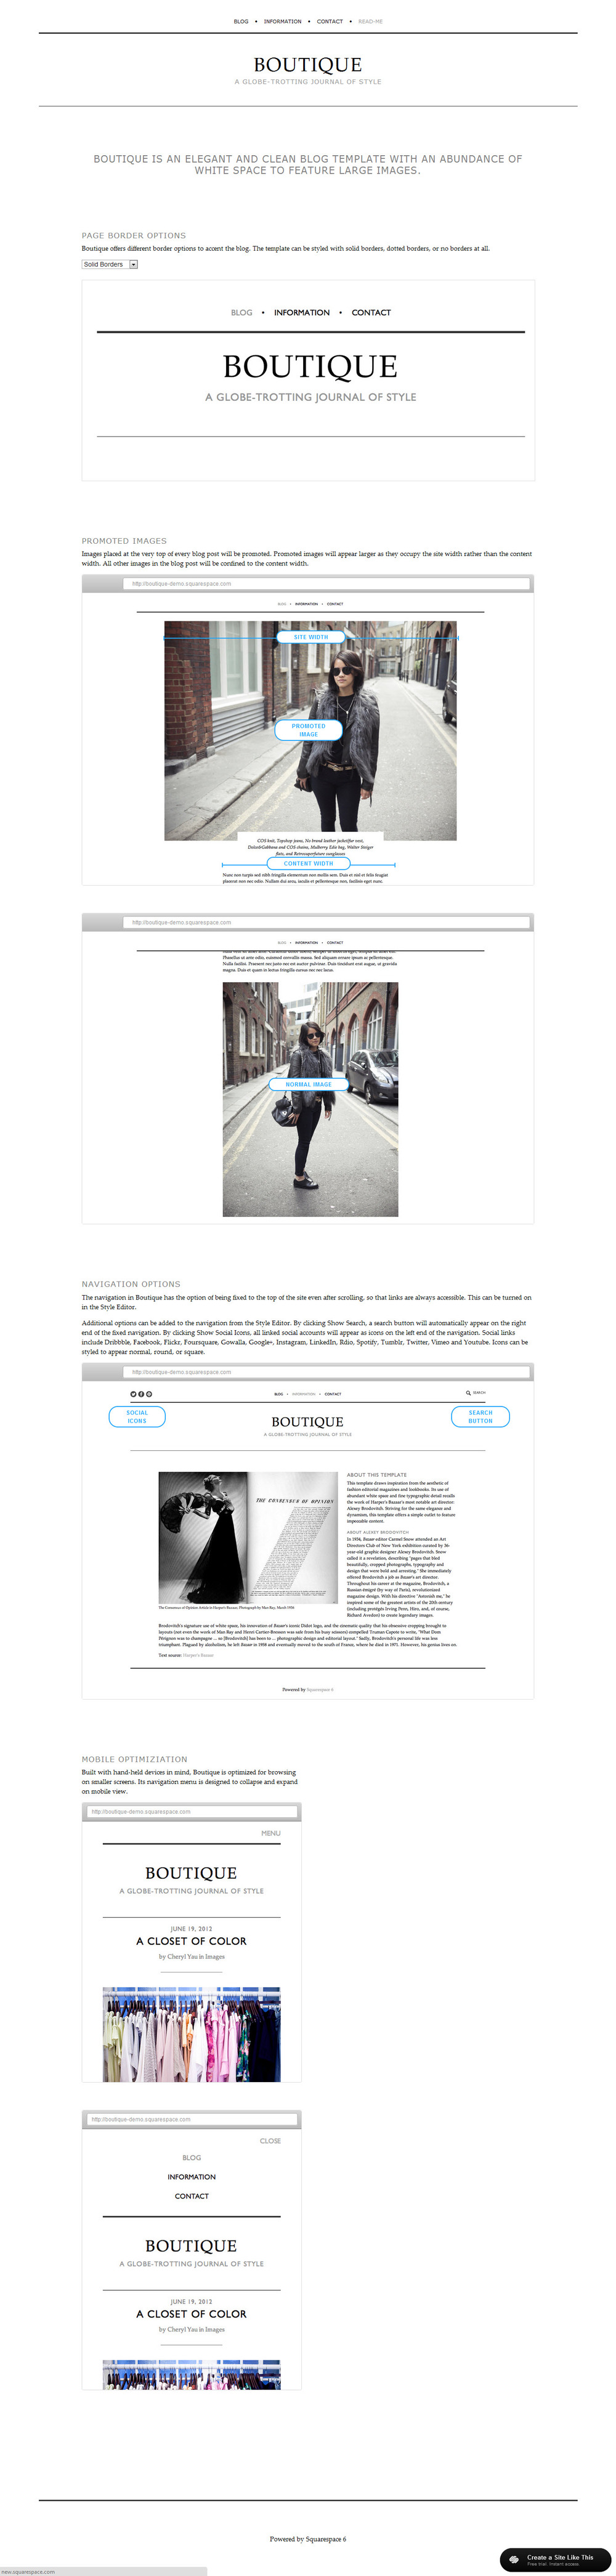 squarespace dovetail template - 28 images - templates squarespace ...